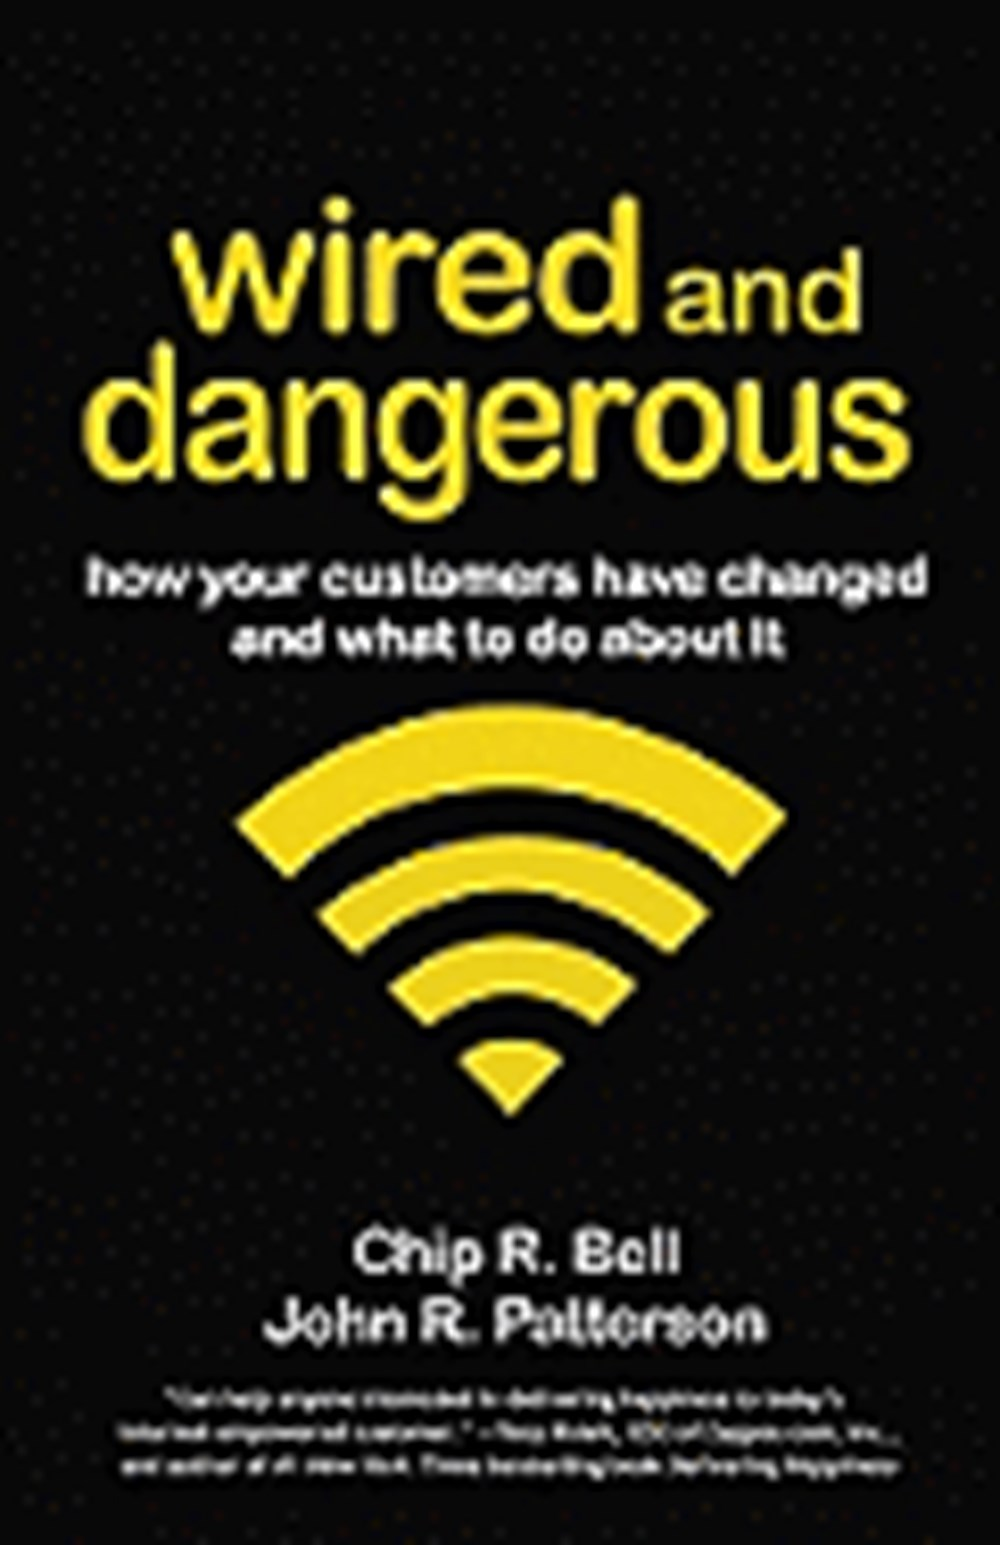 Wired and Dangerous How Your Customers Have Changed and What to Do about It